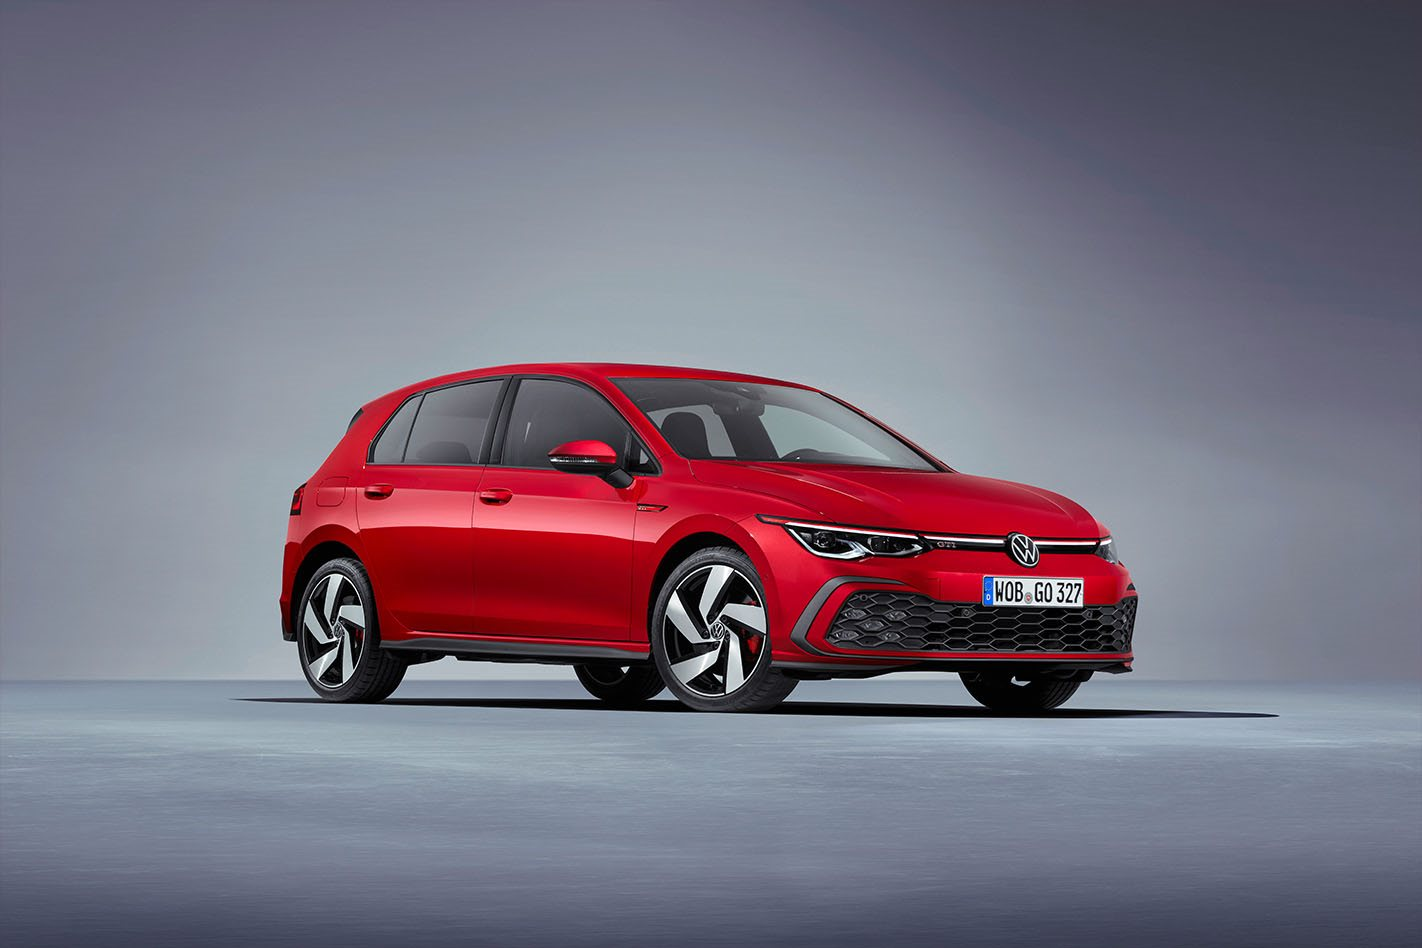 New cars to get excited about in 2021